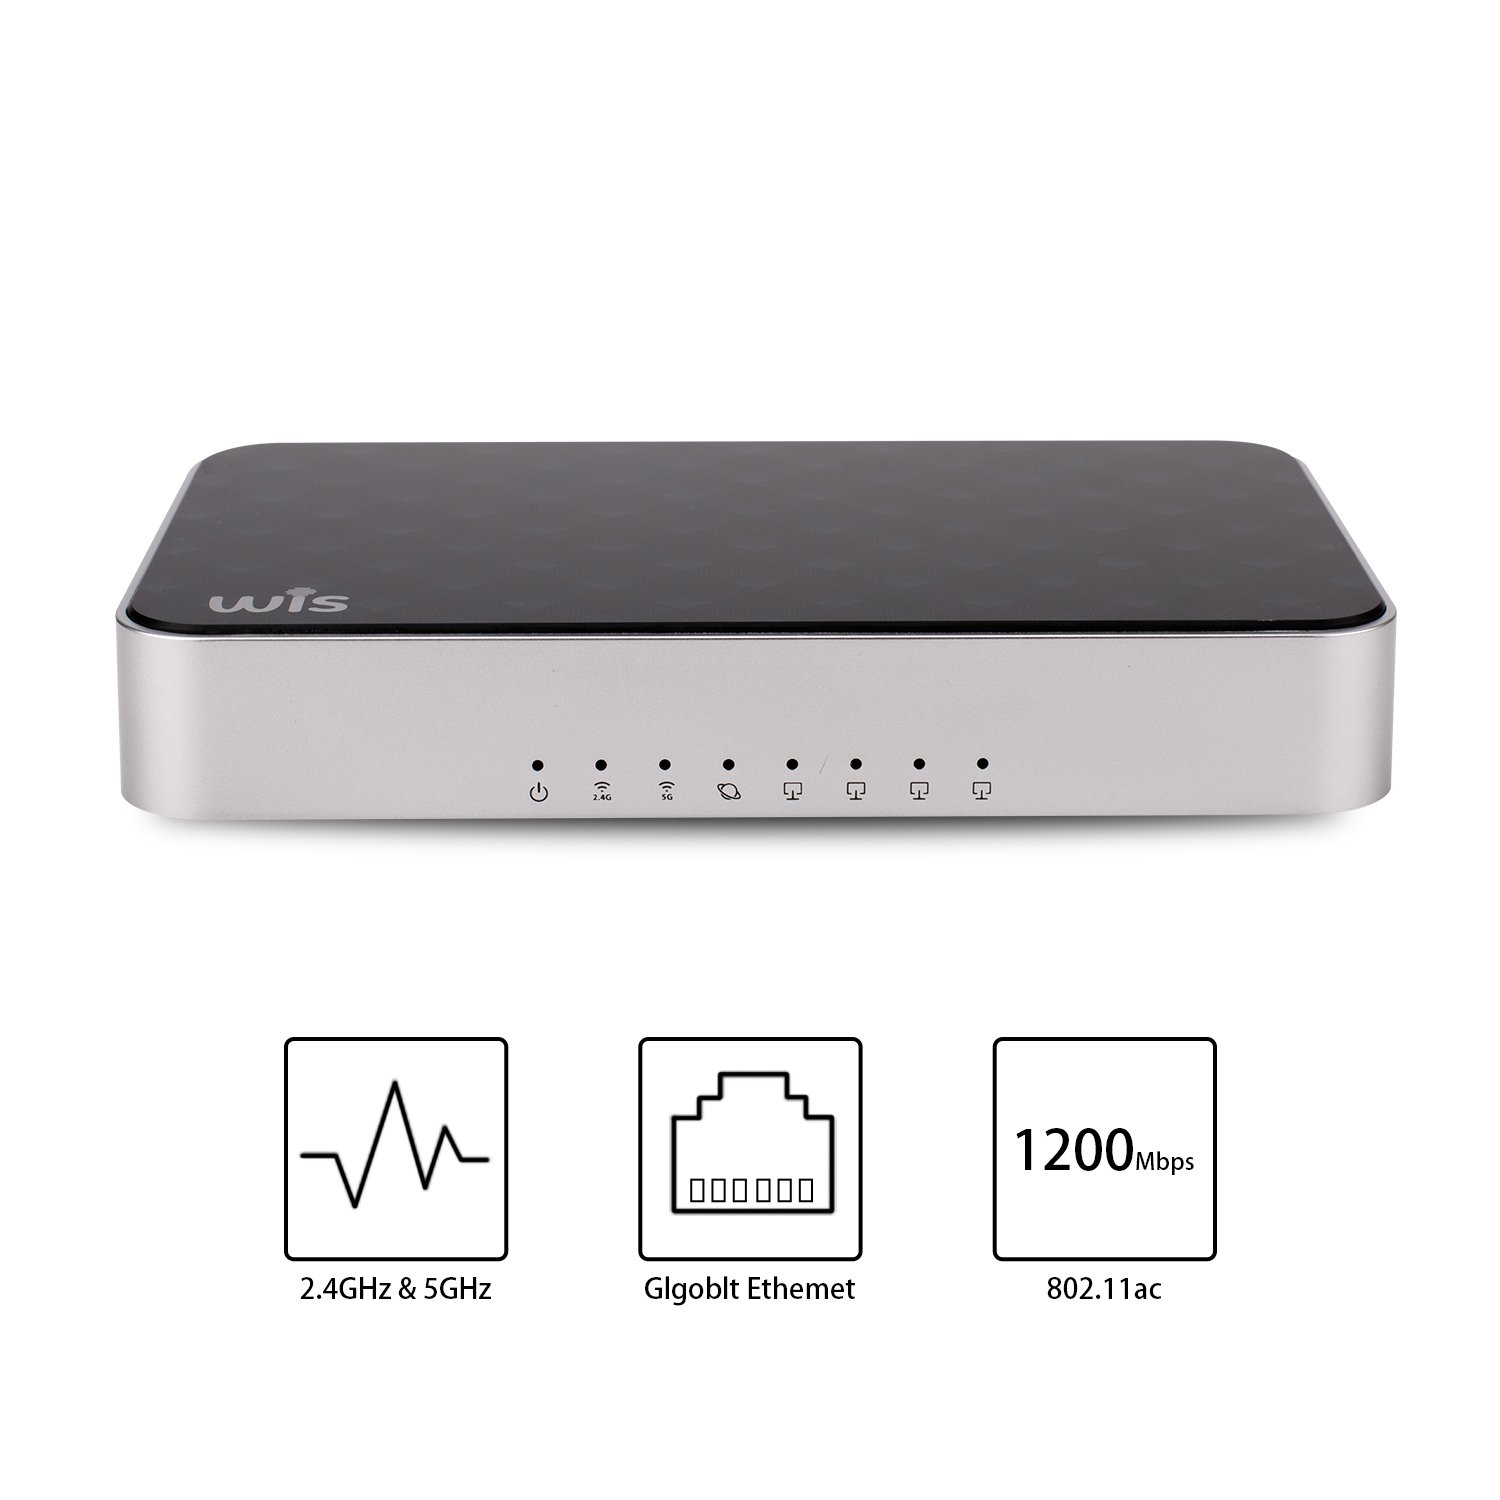 Wireless Smart WiFi Router - Dual Band Gigabit Wireless Internet Routers for Home,Works with Xbox, PlayStation, PC, Whole Home WIFI System Parental Controls (AC1200)